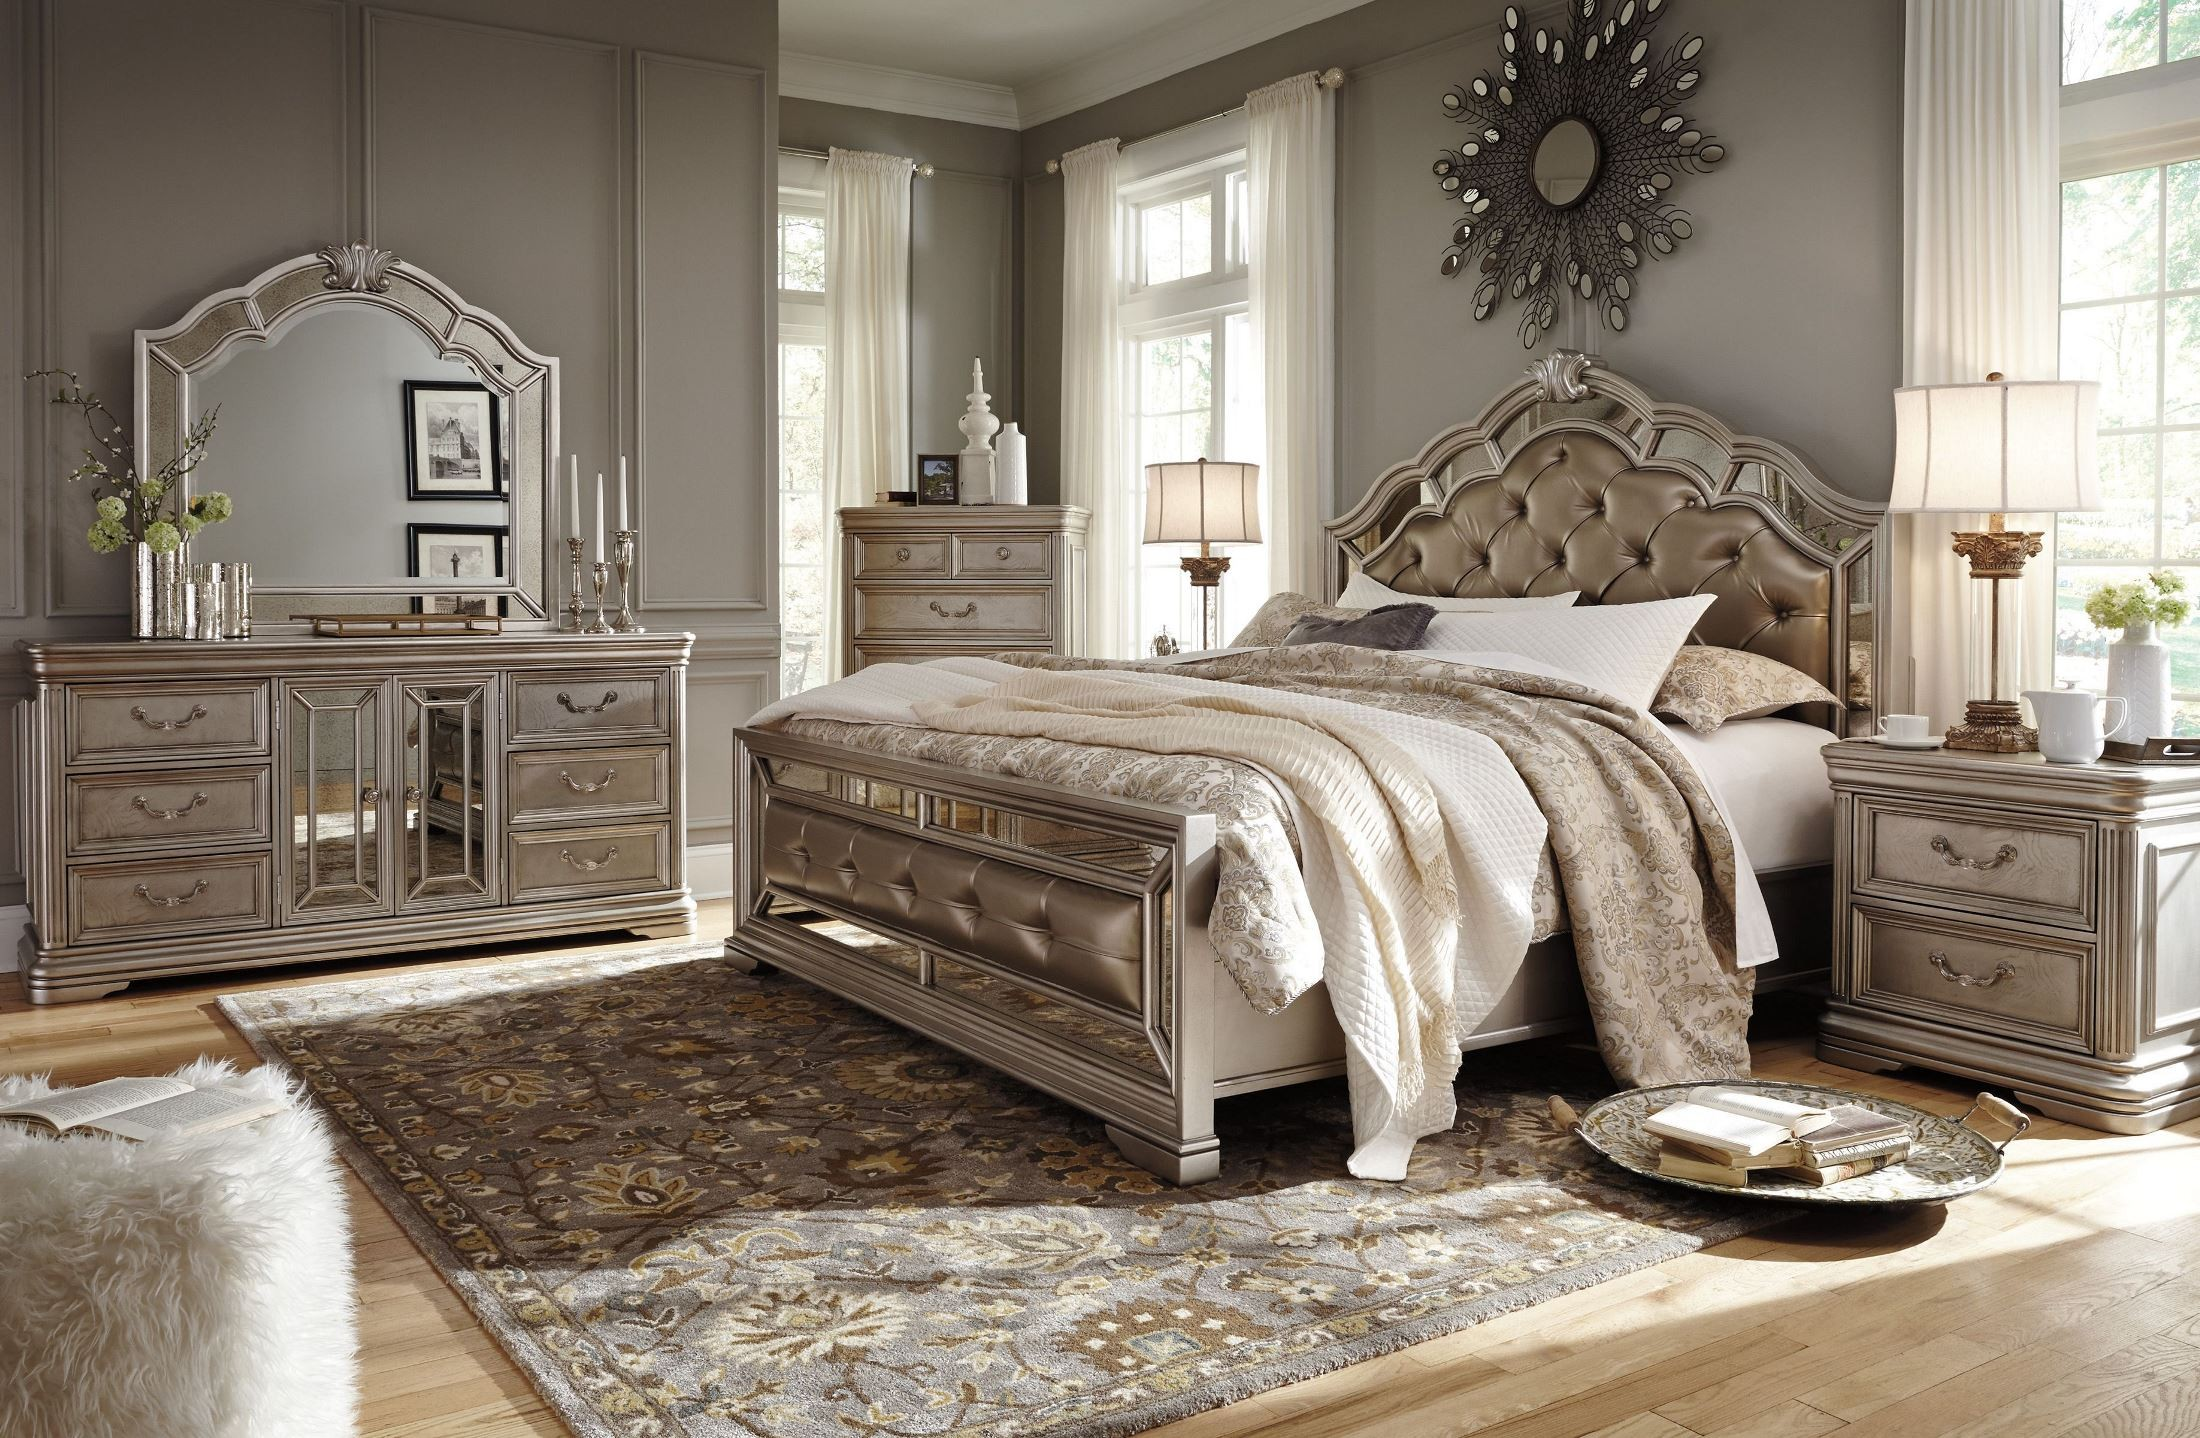 Birlanny silver upholstered panel bedroom set b720 57 54 for Bed set queen furniture